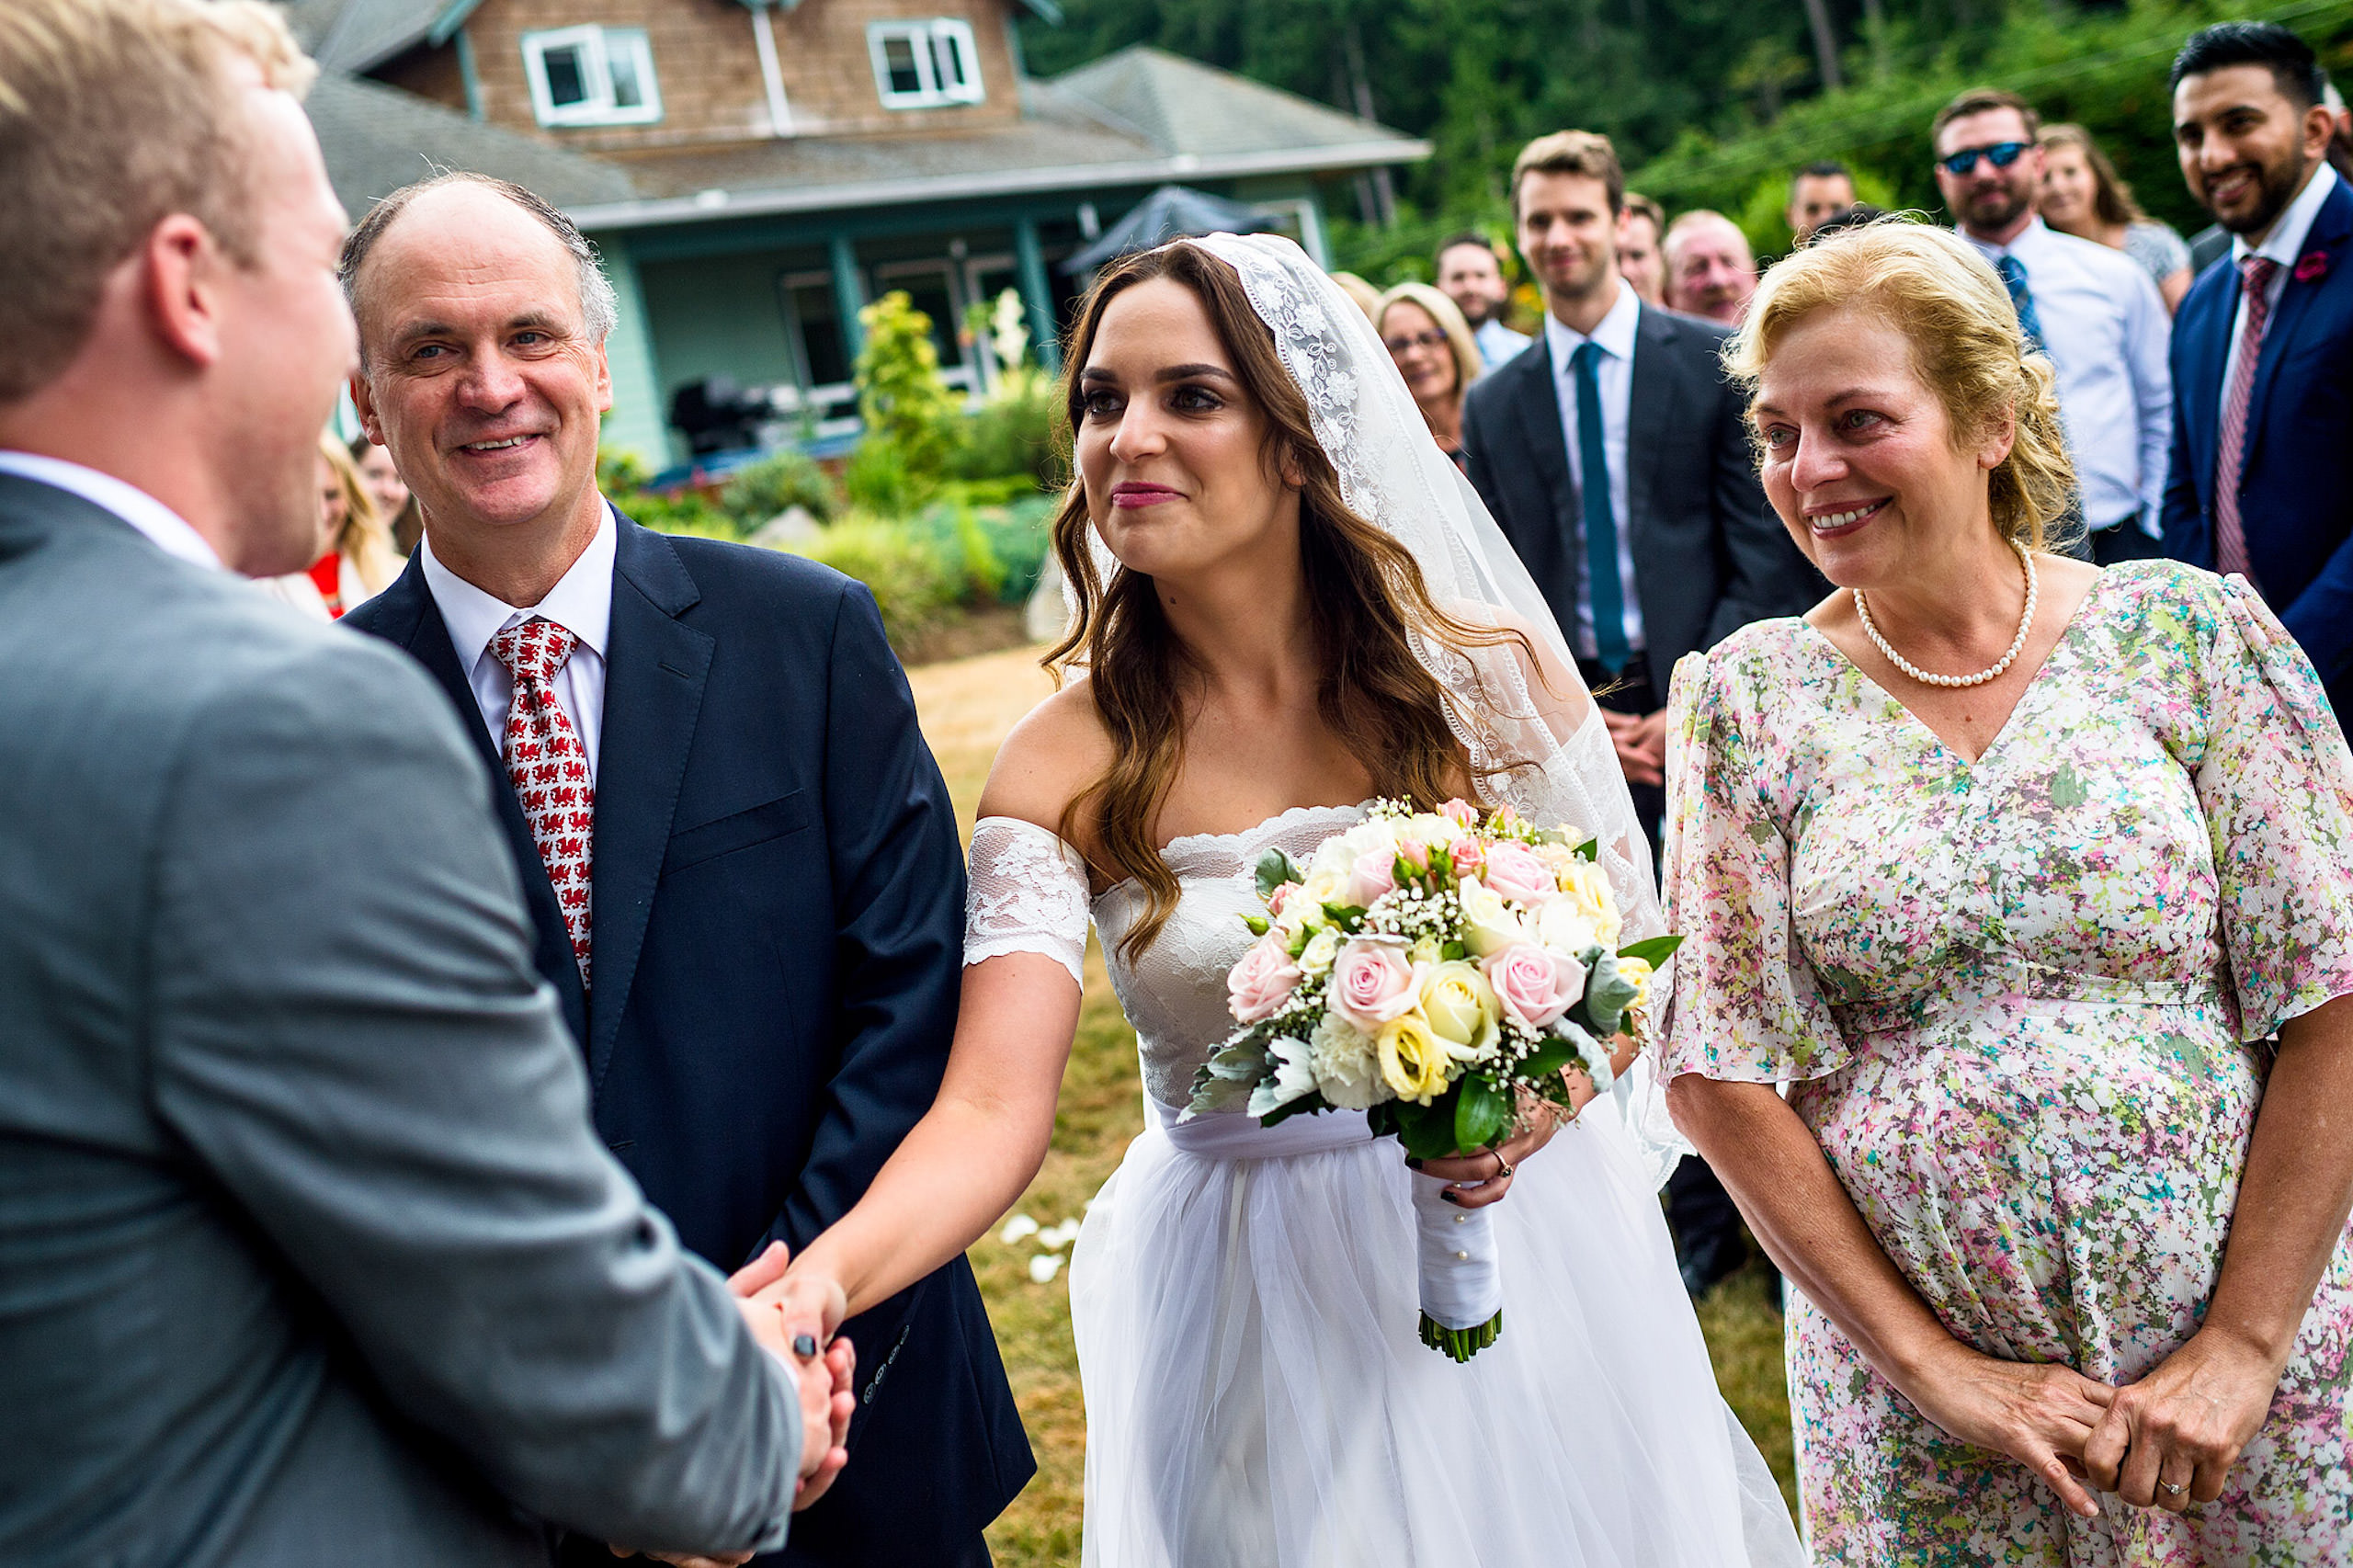 A bride seeing her groom for the first time at a backyard wedding in BC - Qualicum Wedding Photographer